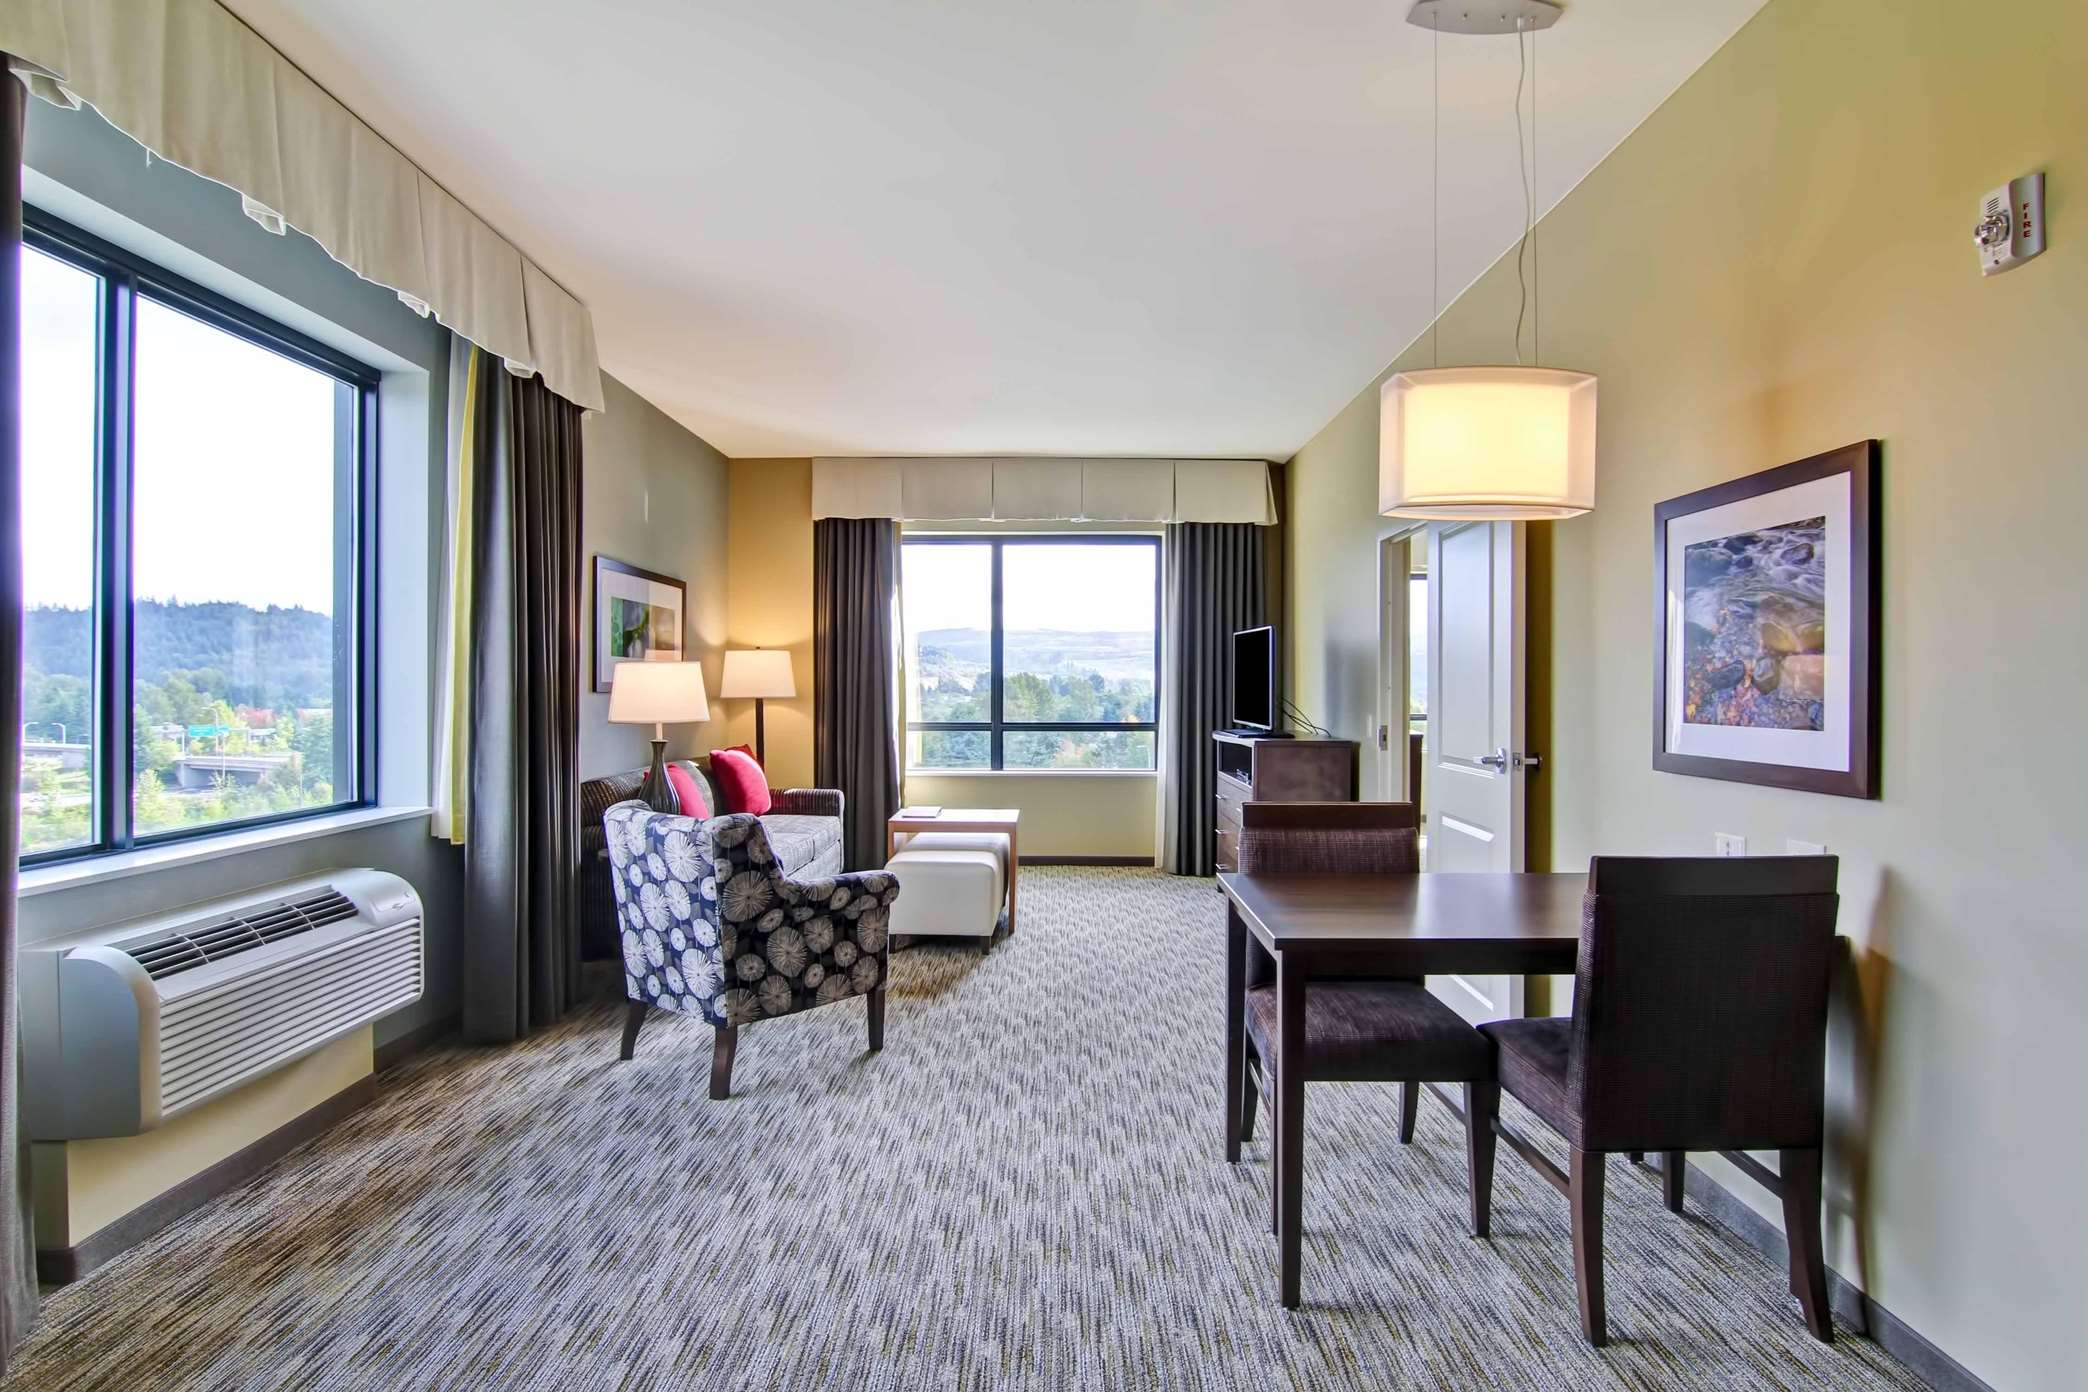 Homewood Suites by Hilton Seattle-Issaquah image 26